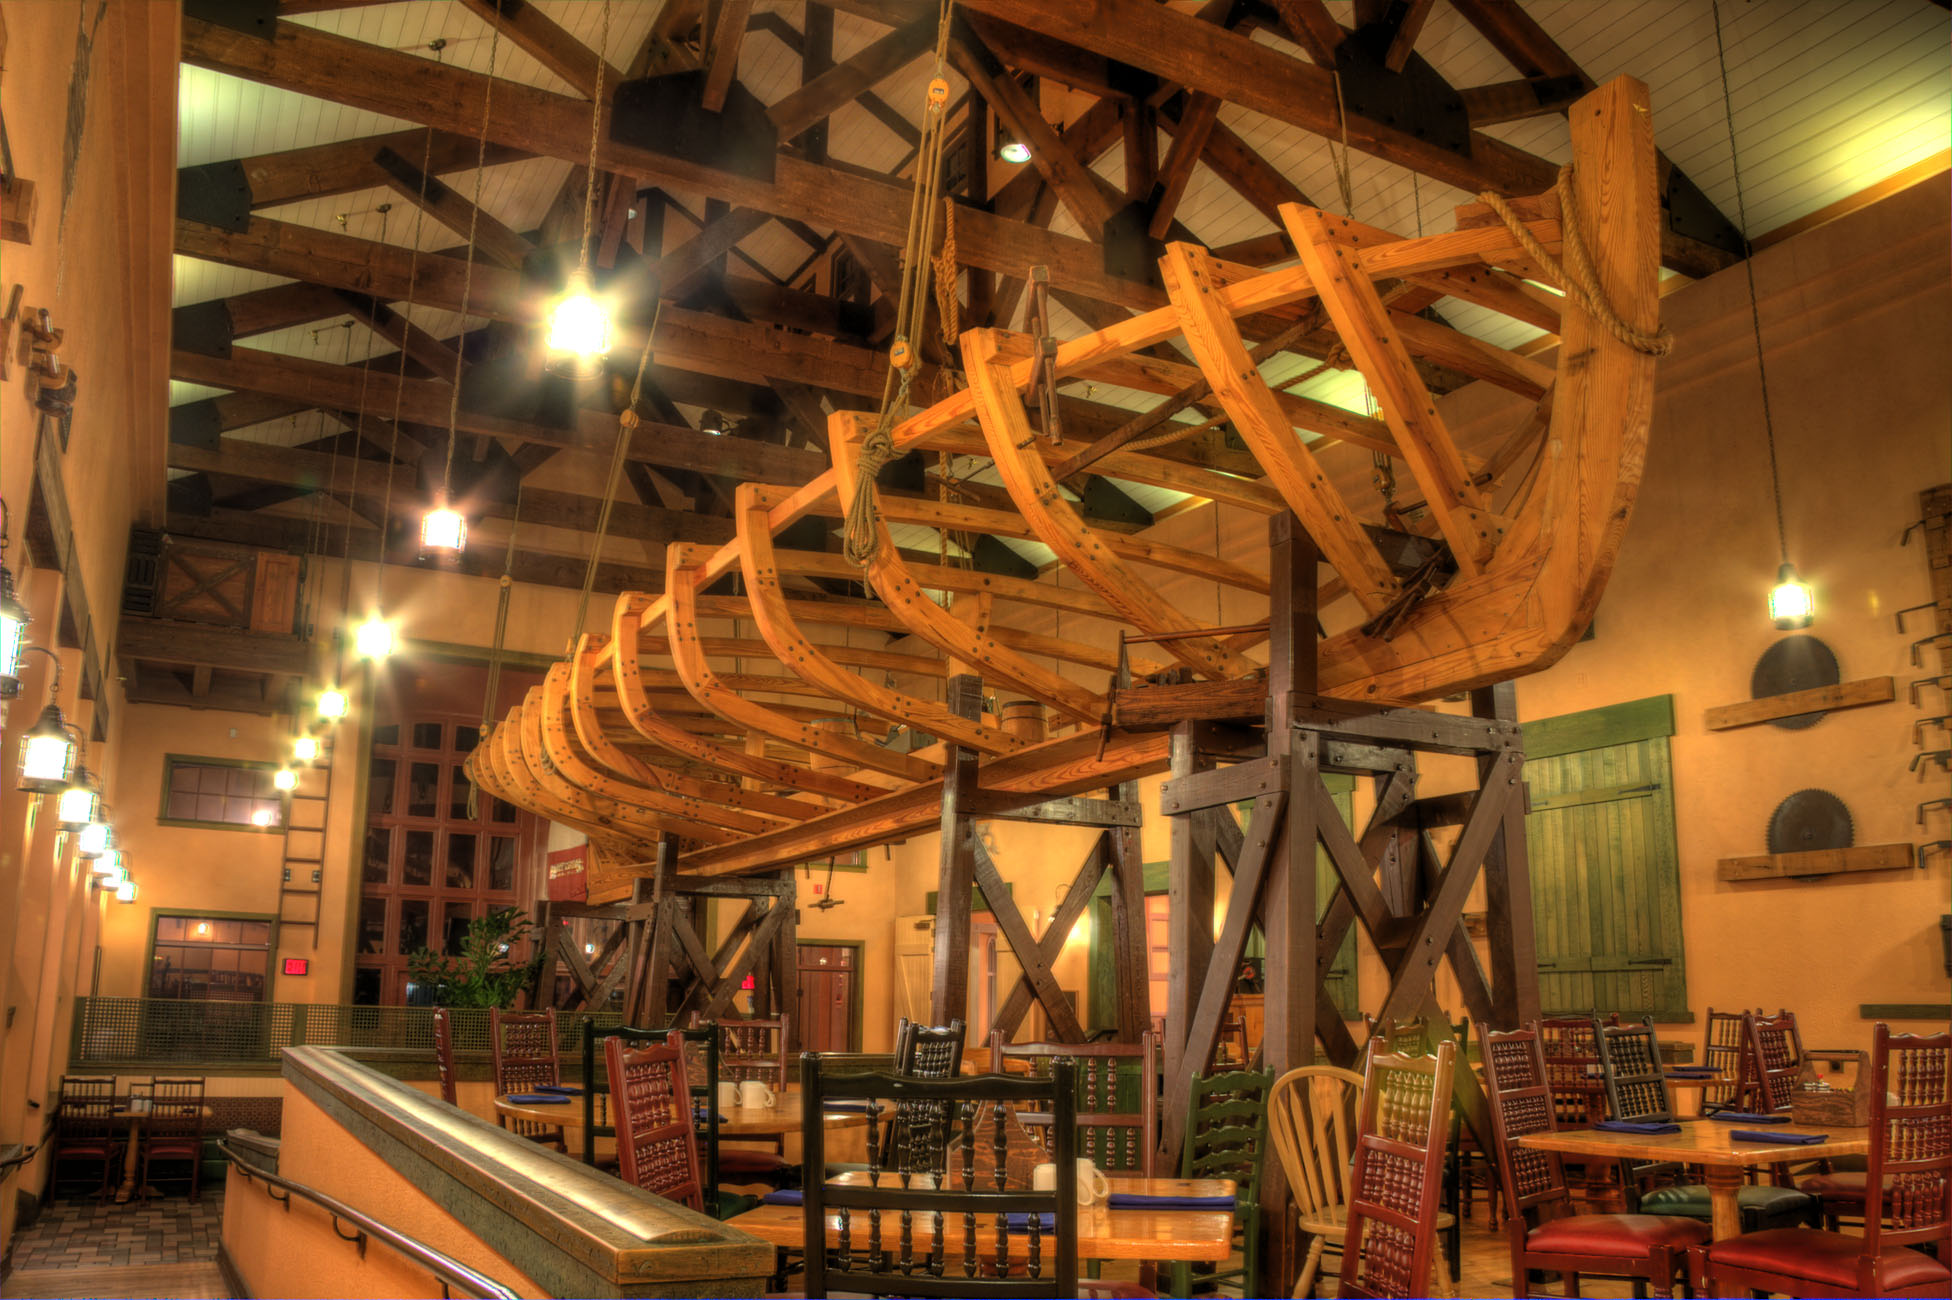 Boatwright S Dining Hall Photo Gallery